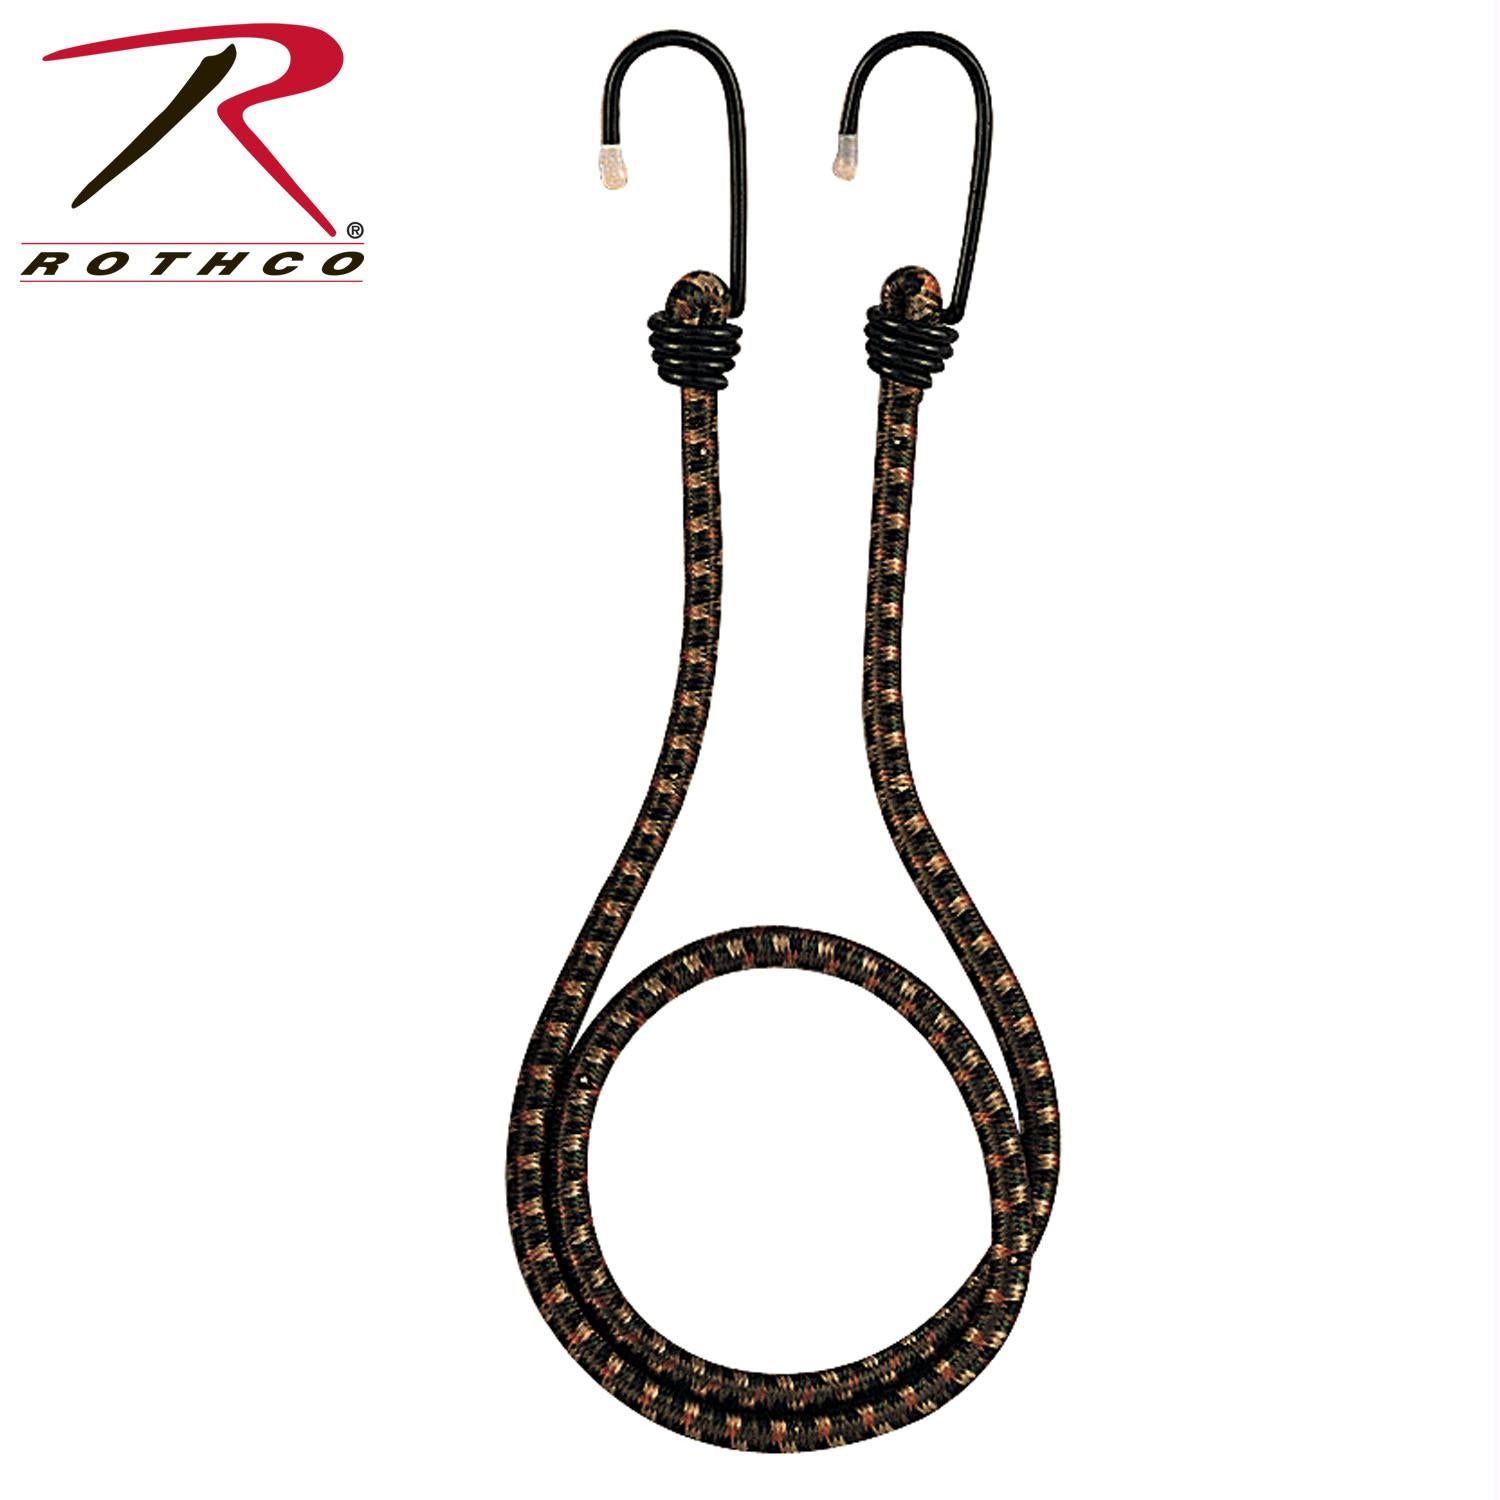 Rothco Bungee Shock Cords - 24 Inches